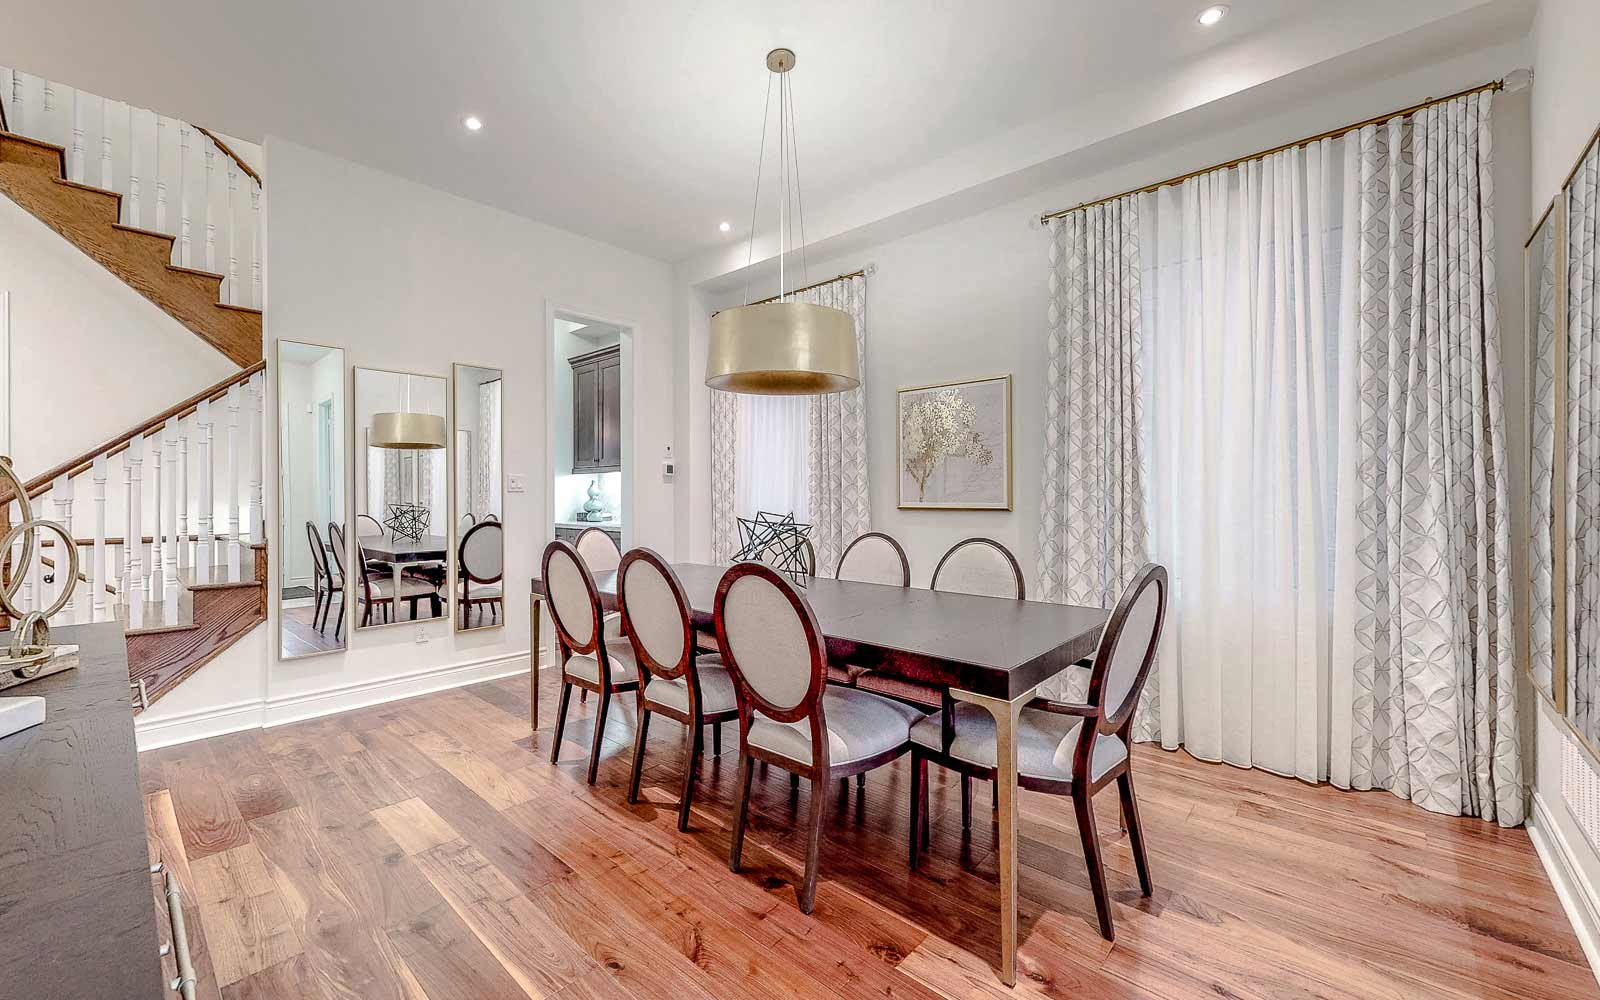 Dining room in Turquoise Model Home at Woodhaven in Aurora, Ontario.